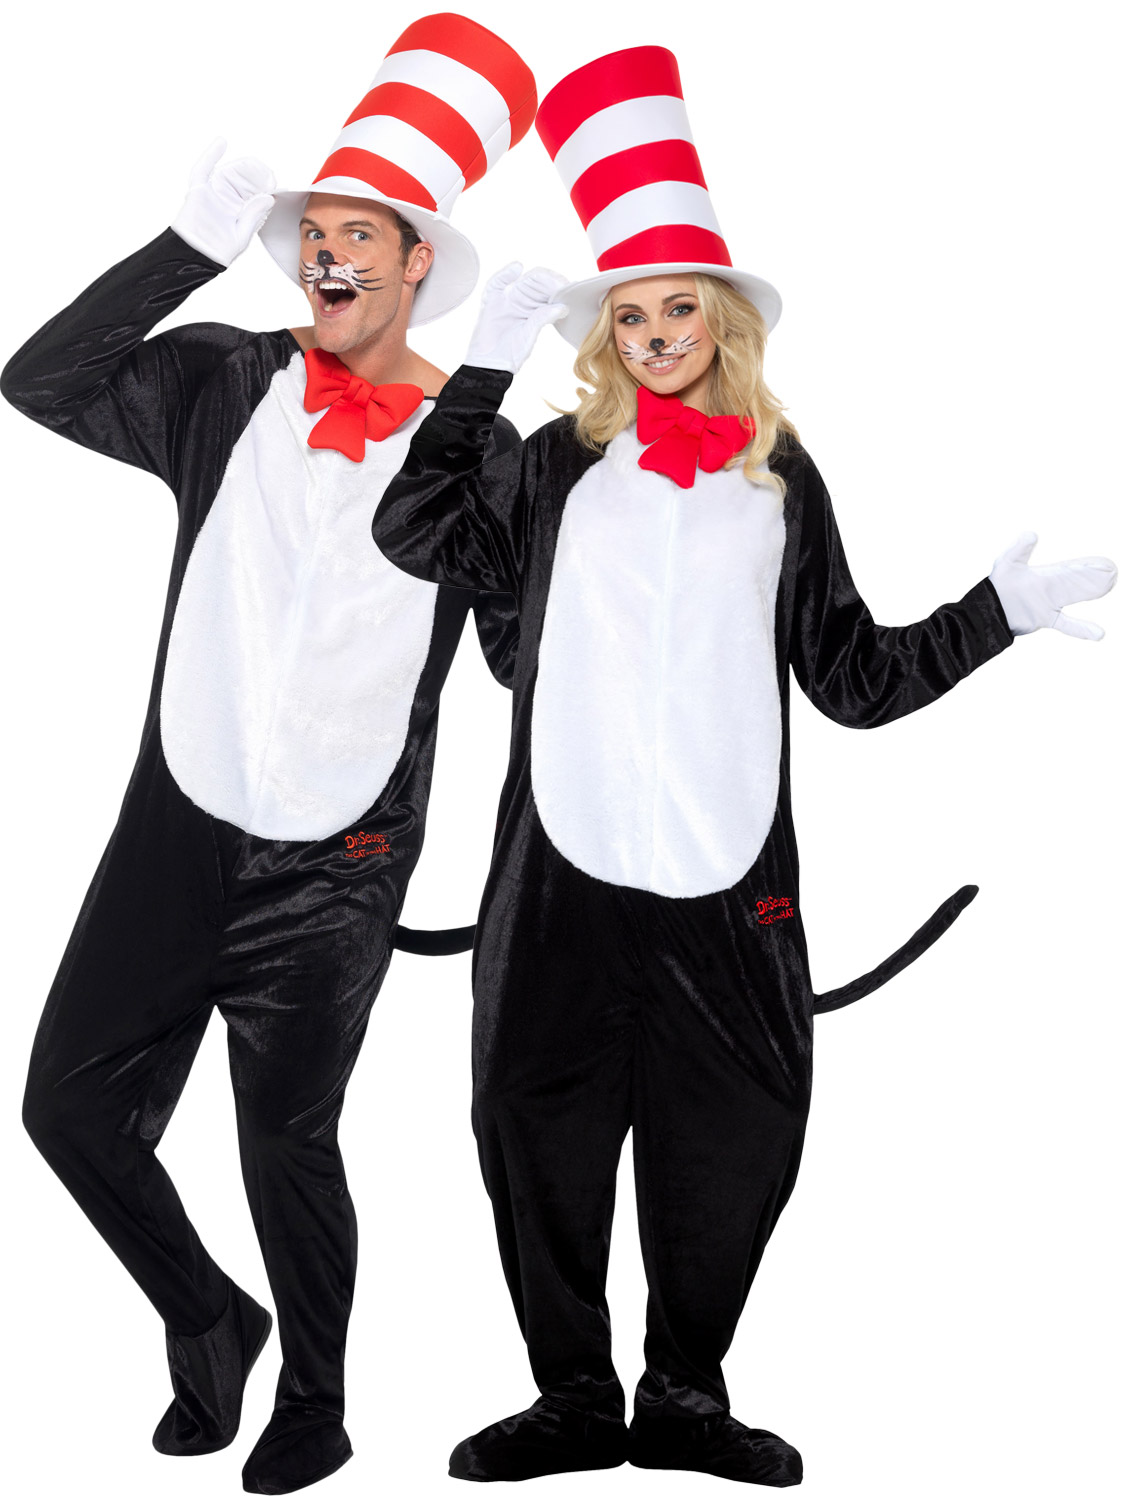 Adults cat in the hat costume mens ladies dr seuss fancy dress book transform yourself into dr sues from the well know story book cat in the hat with this adults costumes ideal if you are dressing up for book week day solutioingenieria Images